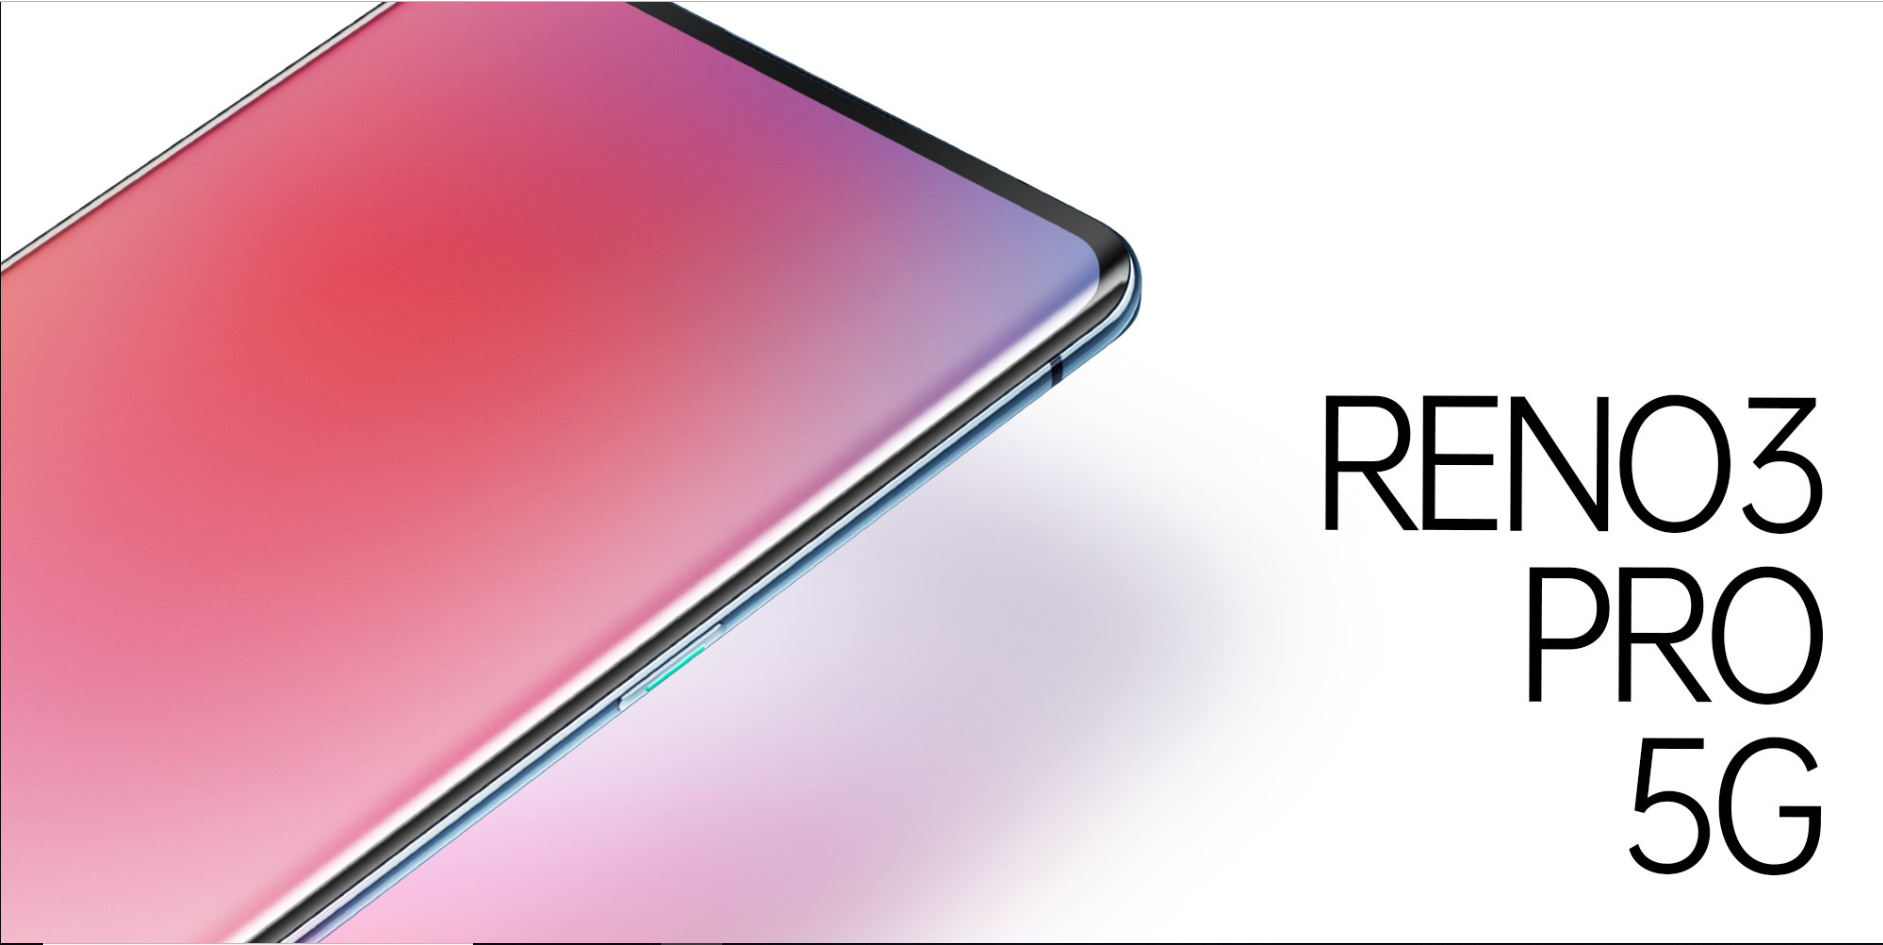 Oppo Reno 3 specifications confirmed – could it make 5G affordable?